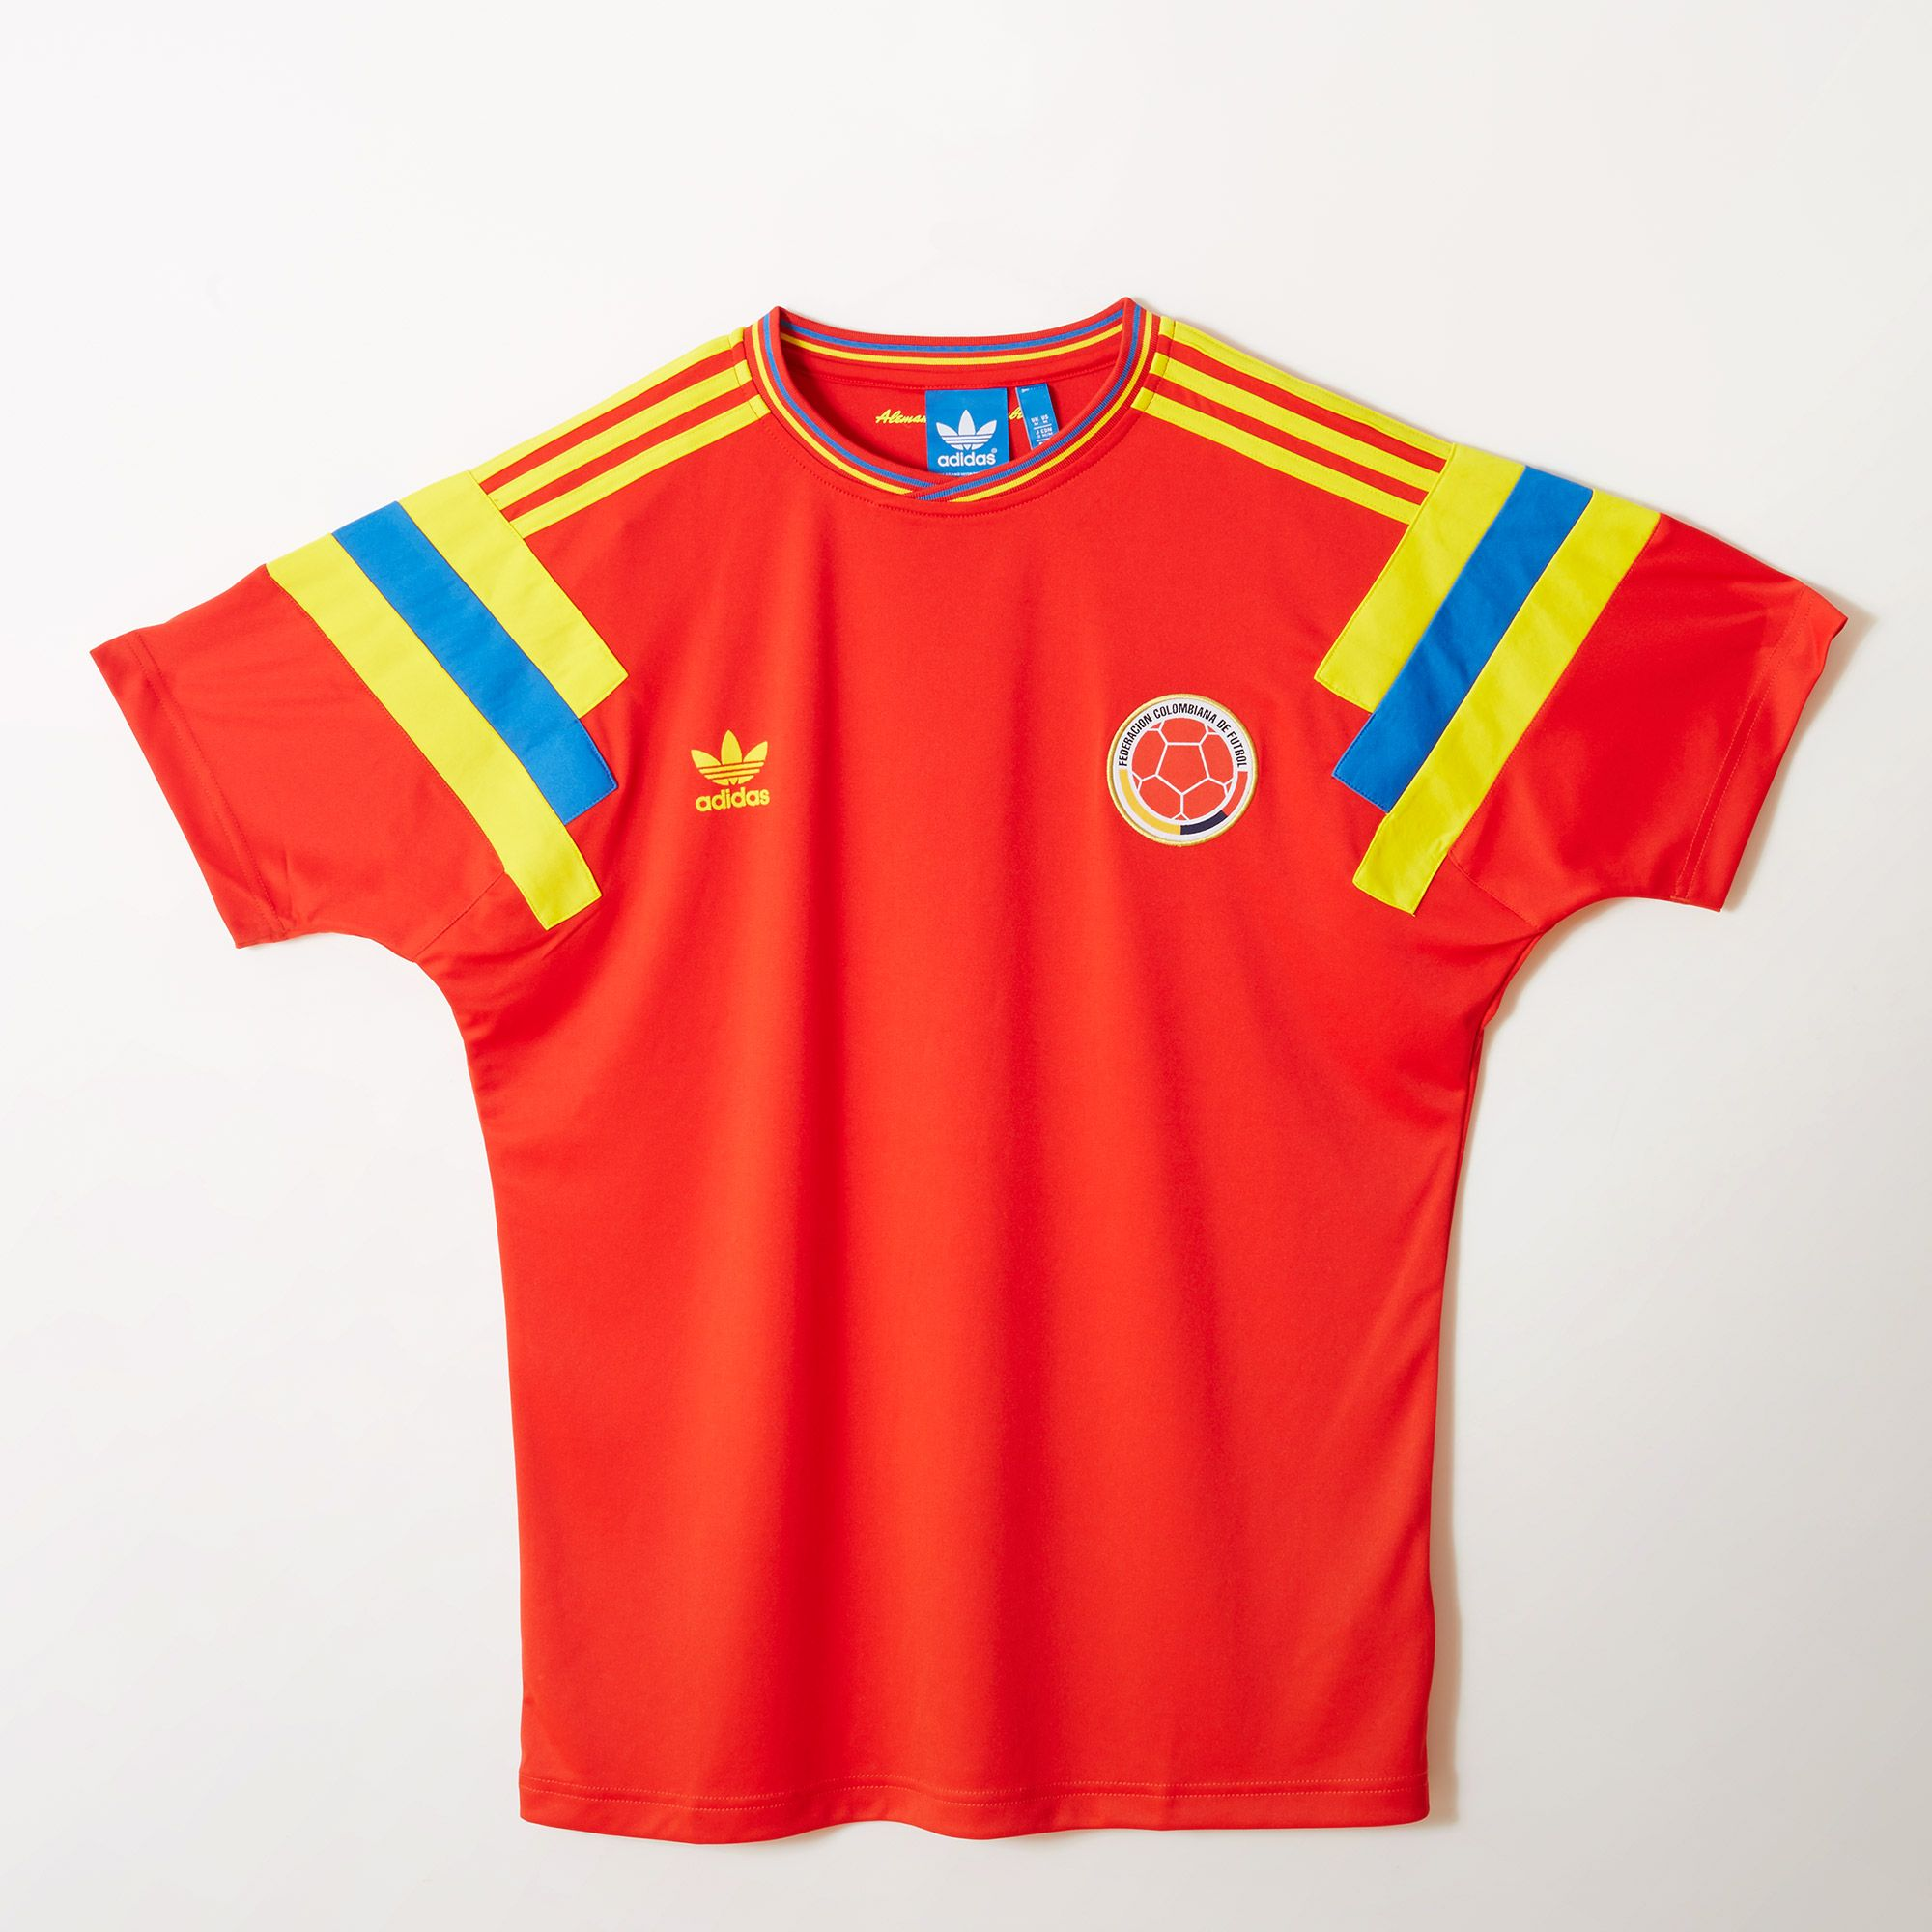 info for 86512 f87d8 Camiseta Originals Colombia Italia 90   179.900 Adidas Colombia, Italia,  The Selection, Sports